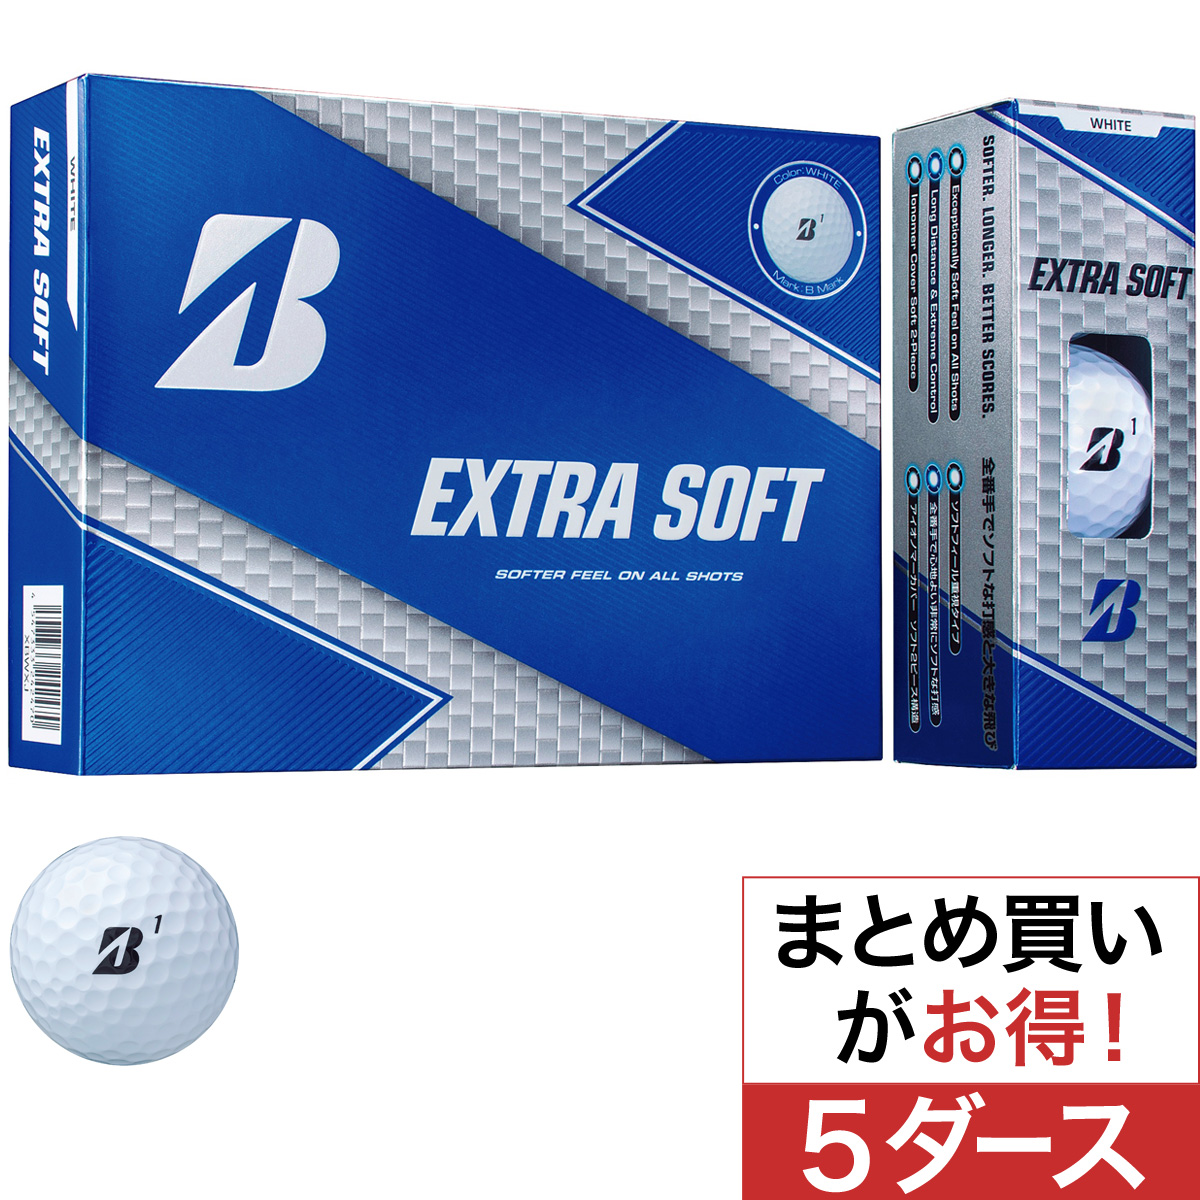 EXTRA SOFT ボール 5ダースセット